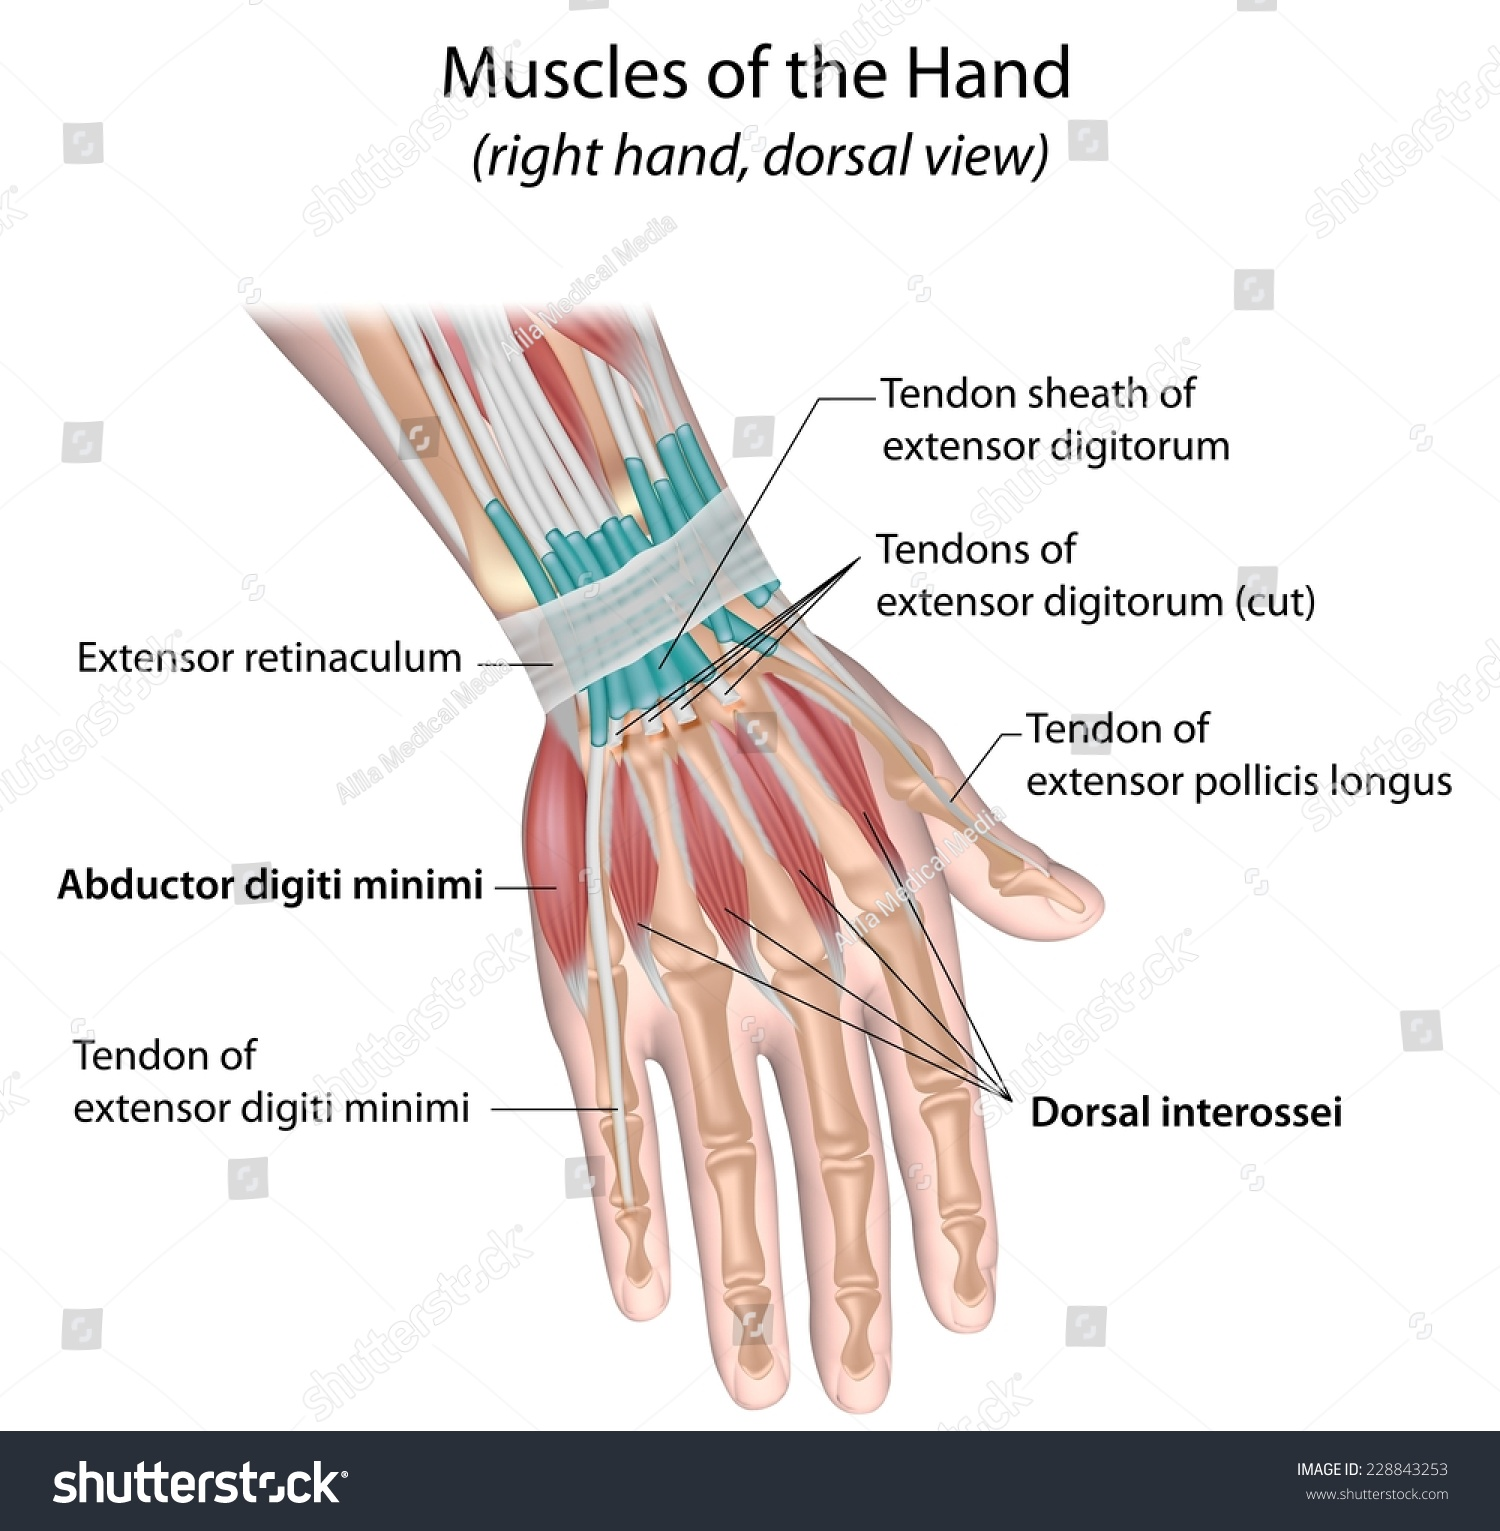 muscle diagram dorsal limitorque wiring diagrams muscles hand view labeled stock illustration 228843253 of